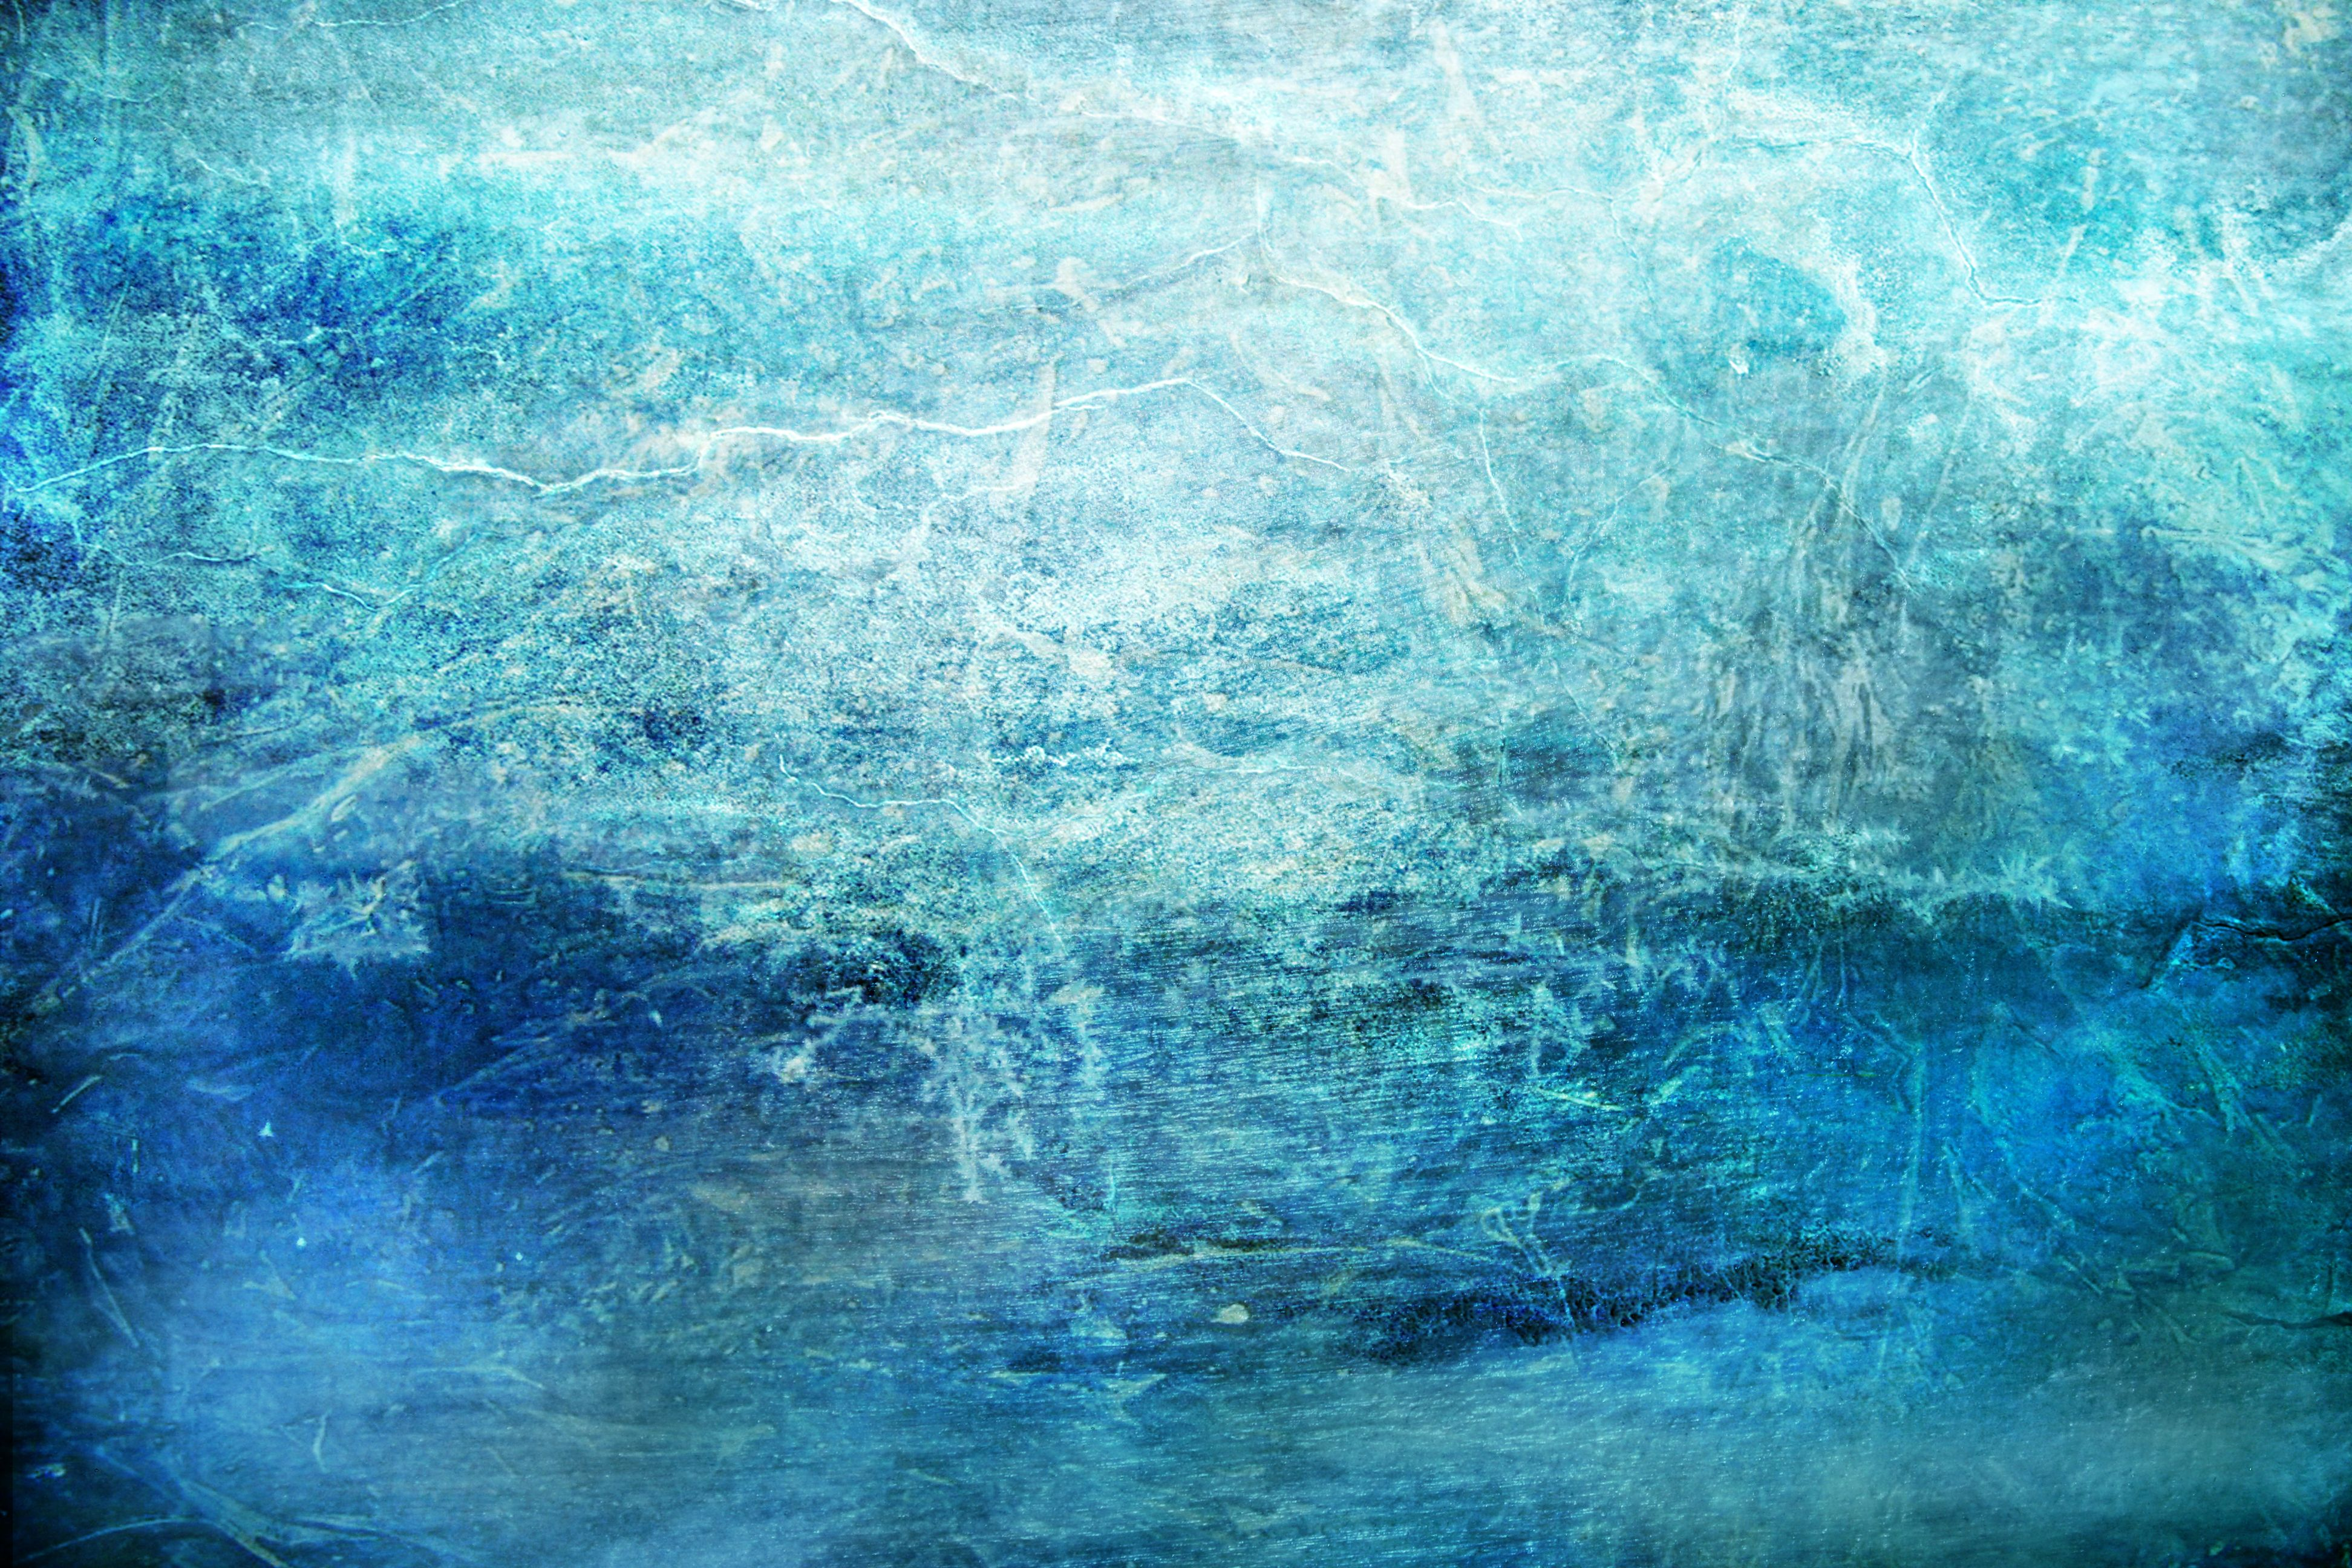 Lisa: This texture looks like under the water. Texture Backgrounds Wallpaper HD | Wallpicshd ...